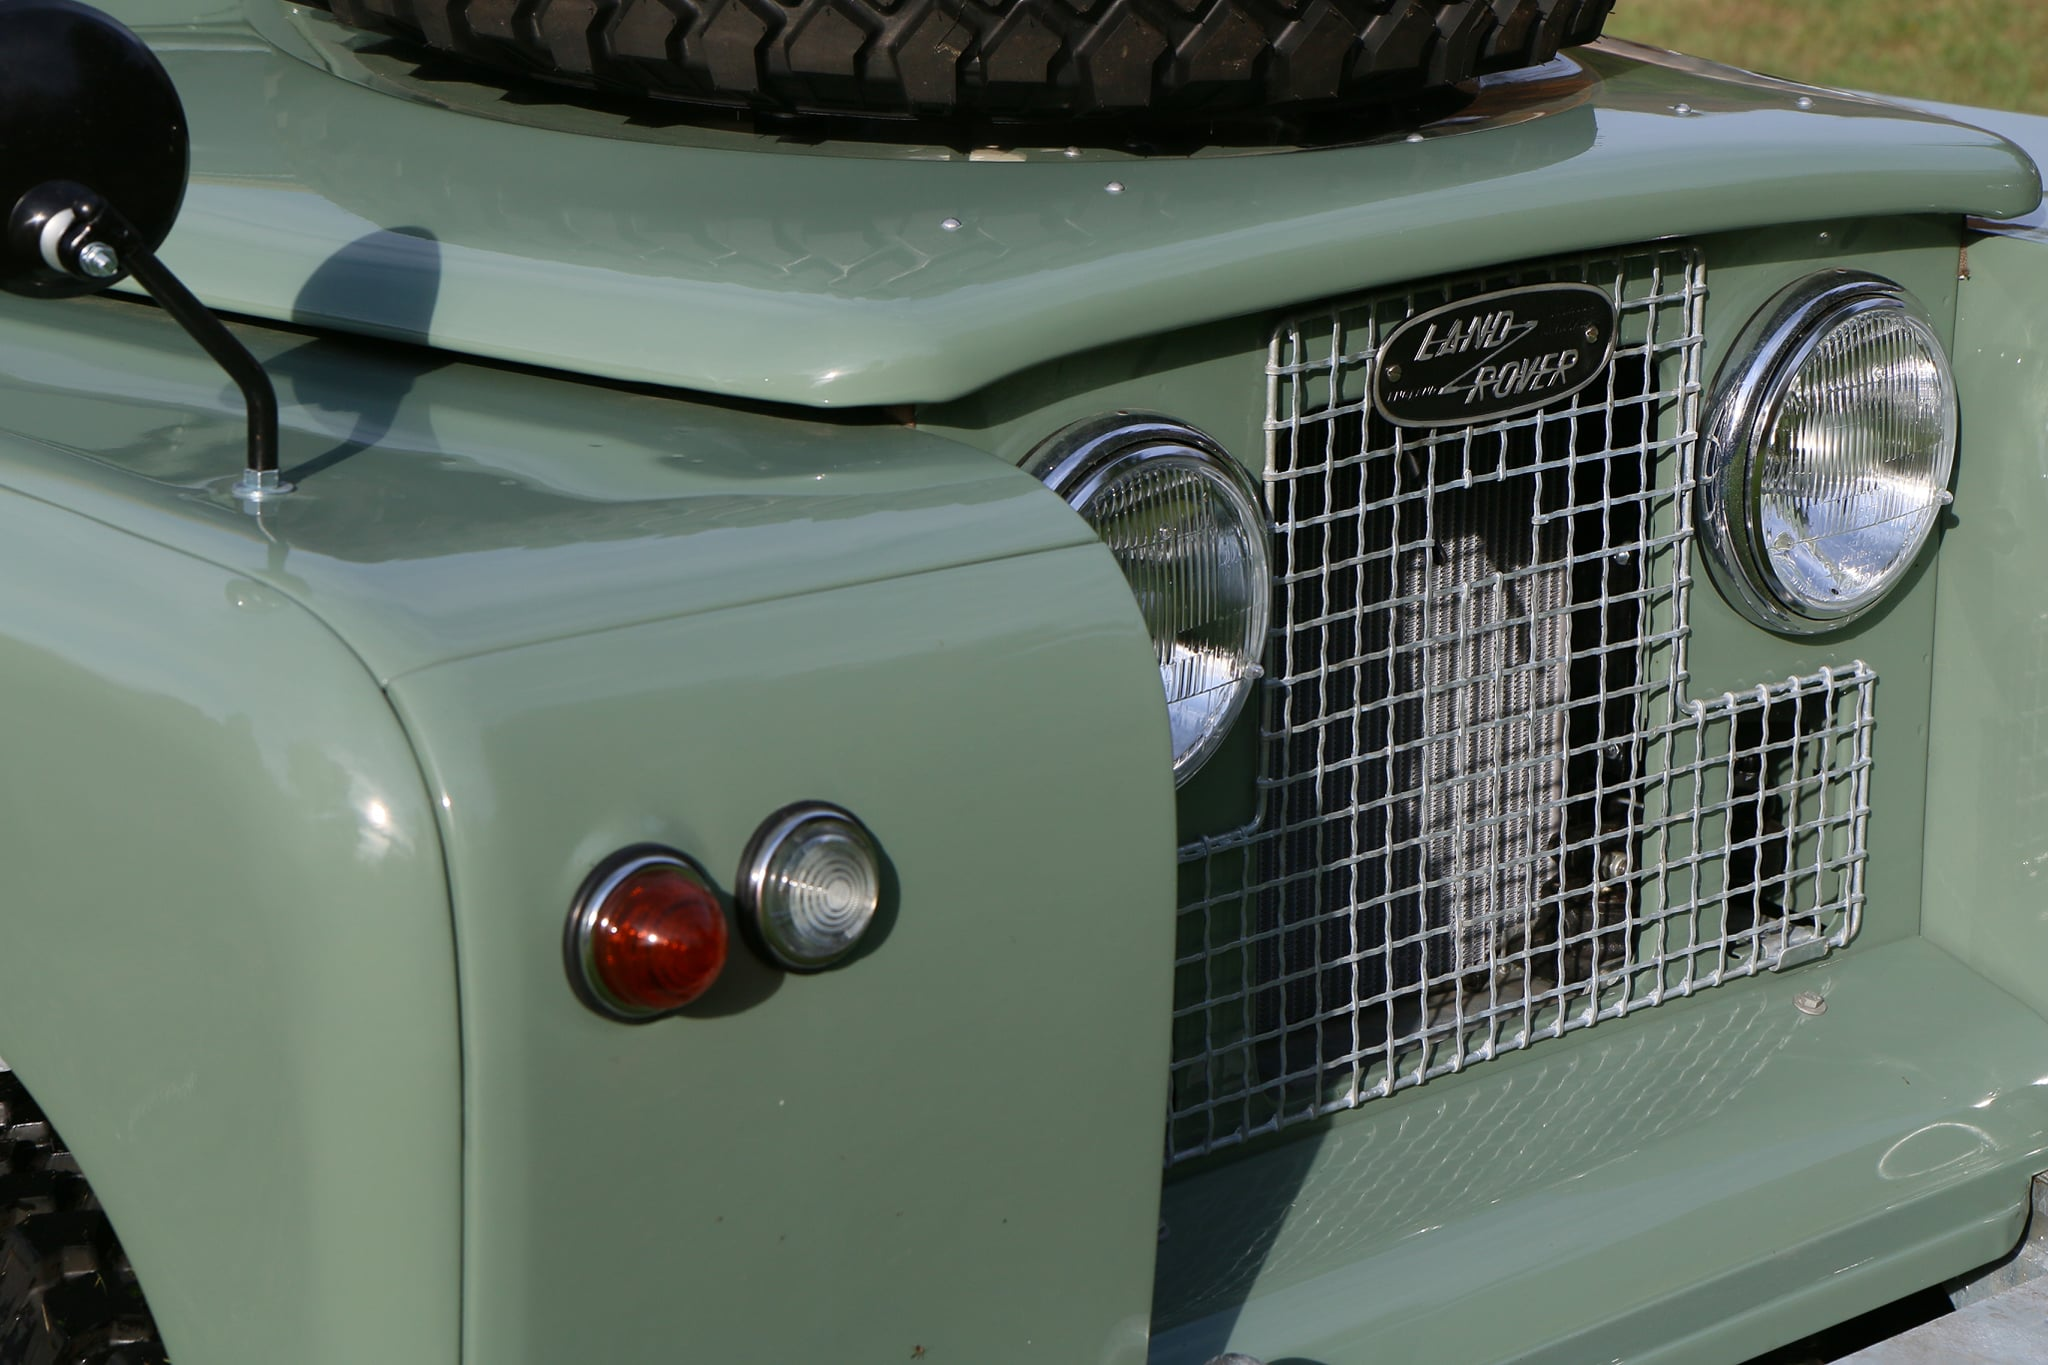 1965 Land Rover Series IIA Pastel Green Photo 6